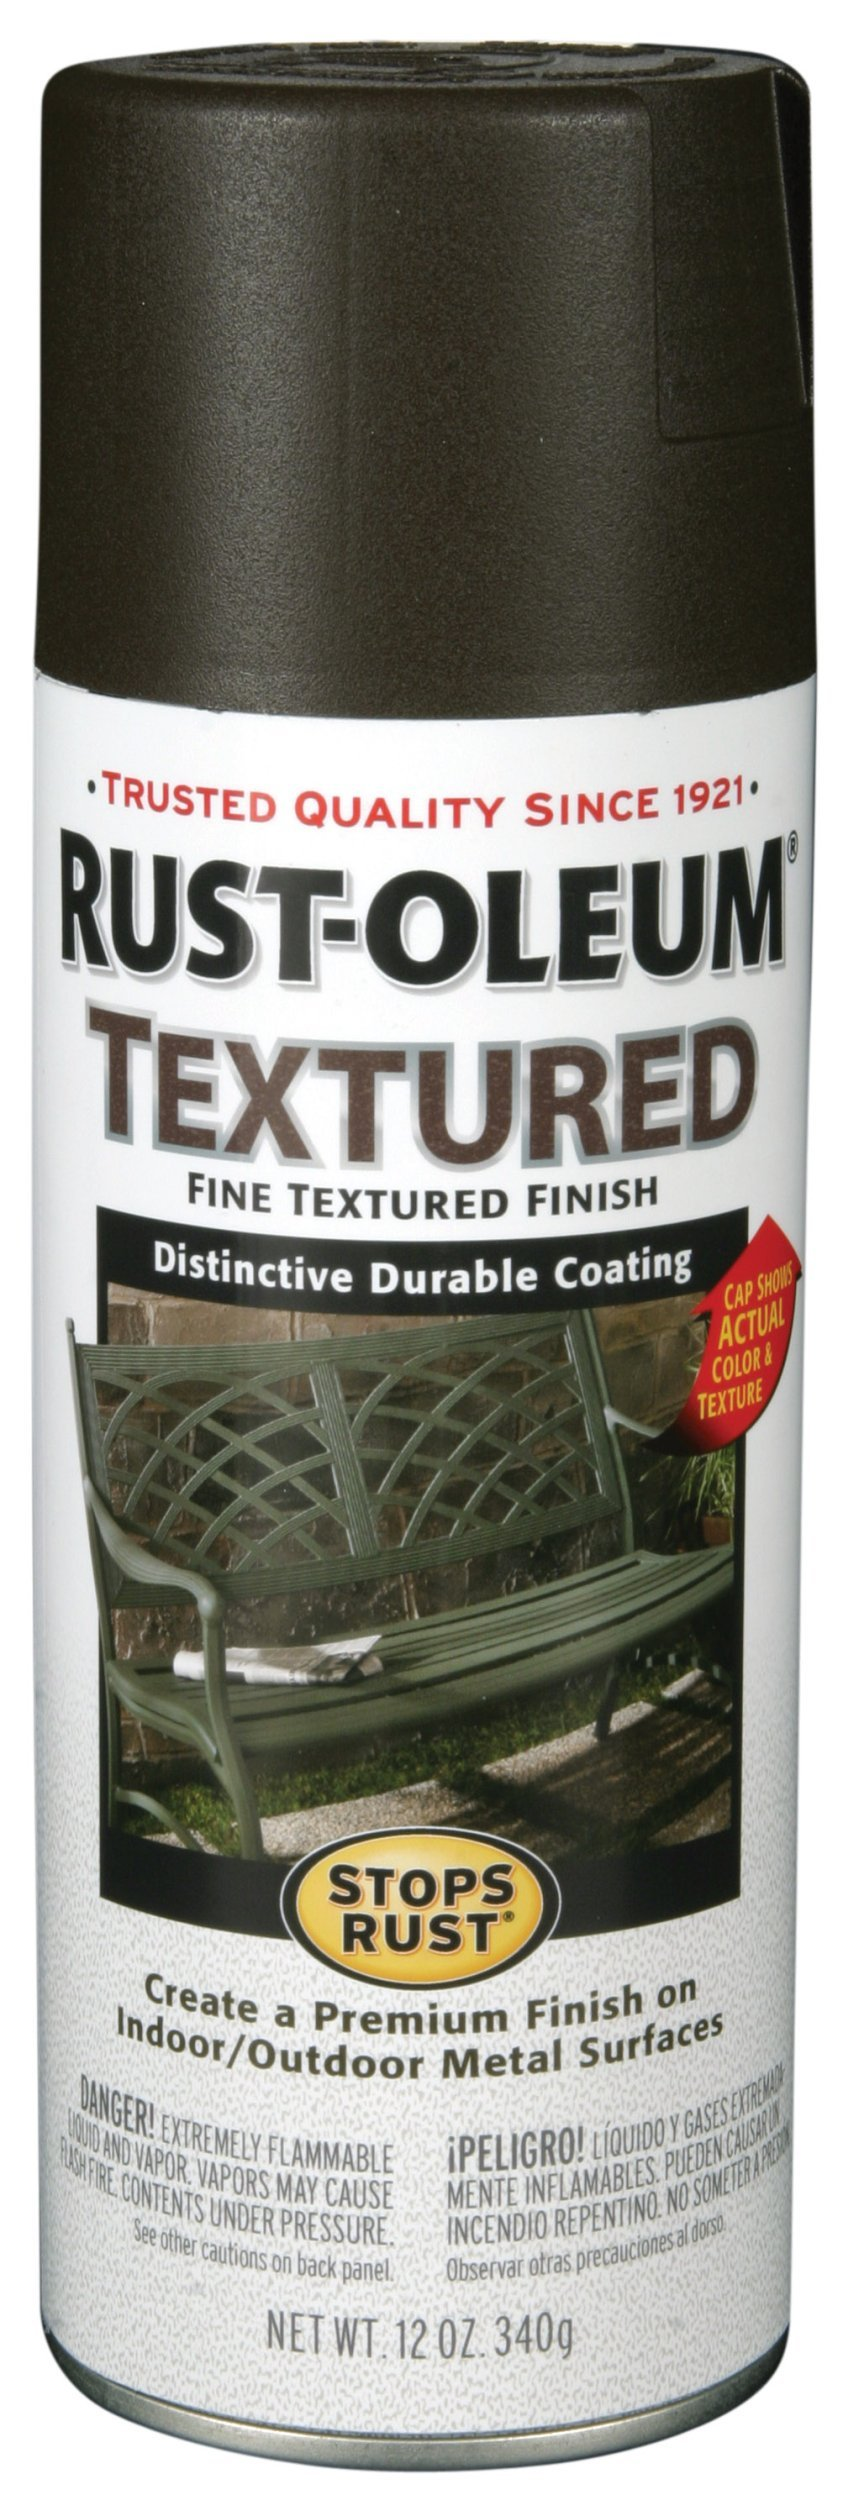 Rust-Oleum 7226830 Textured Spray Paint, 12 oz, Bronze by Rust-Oleum